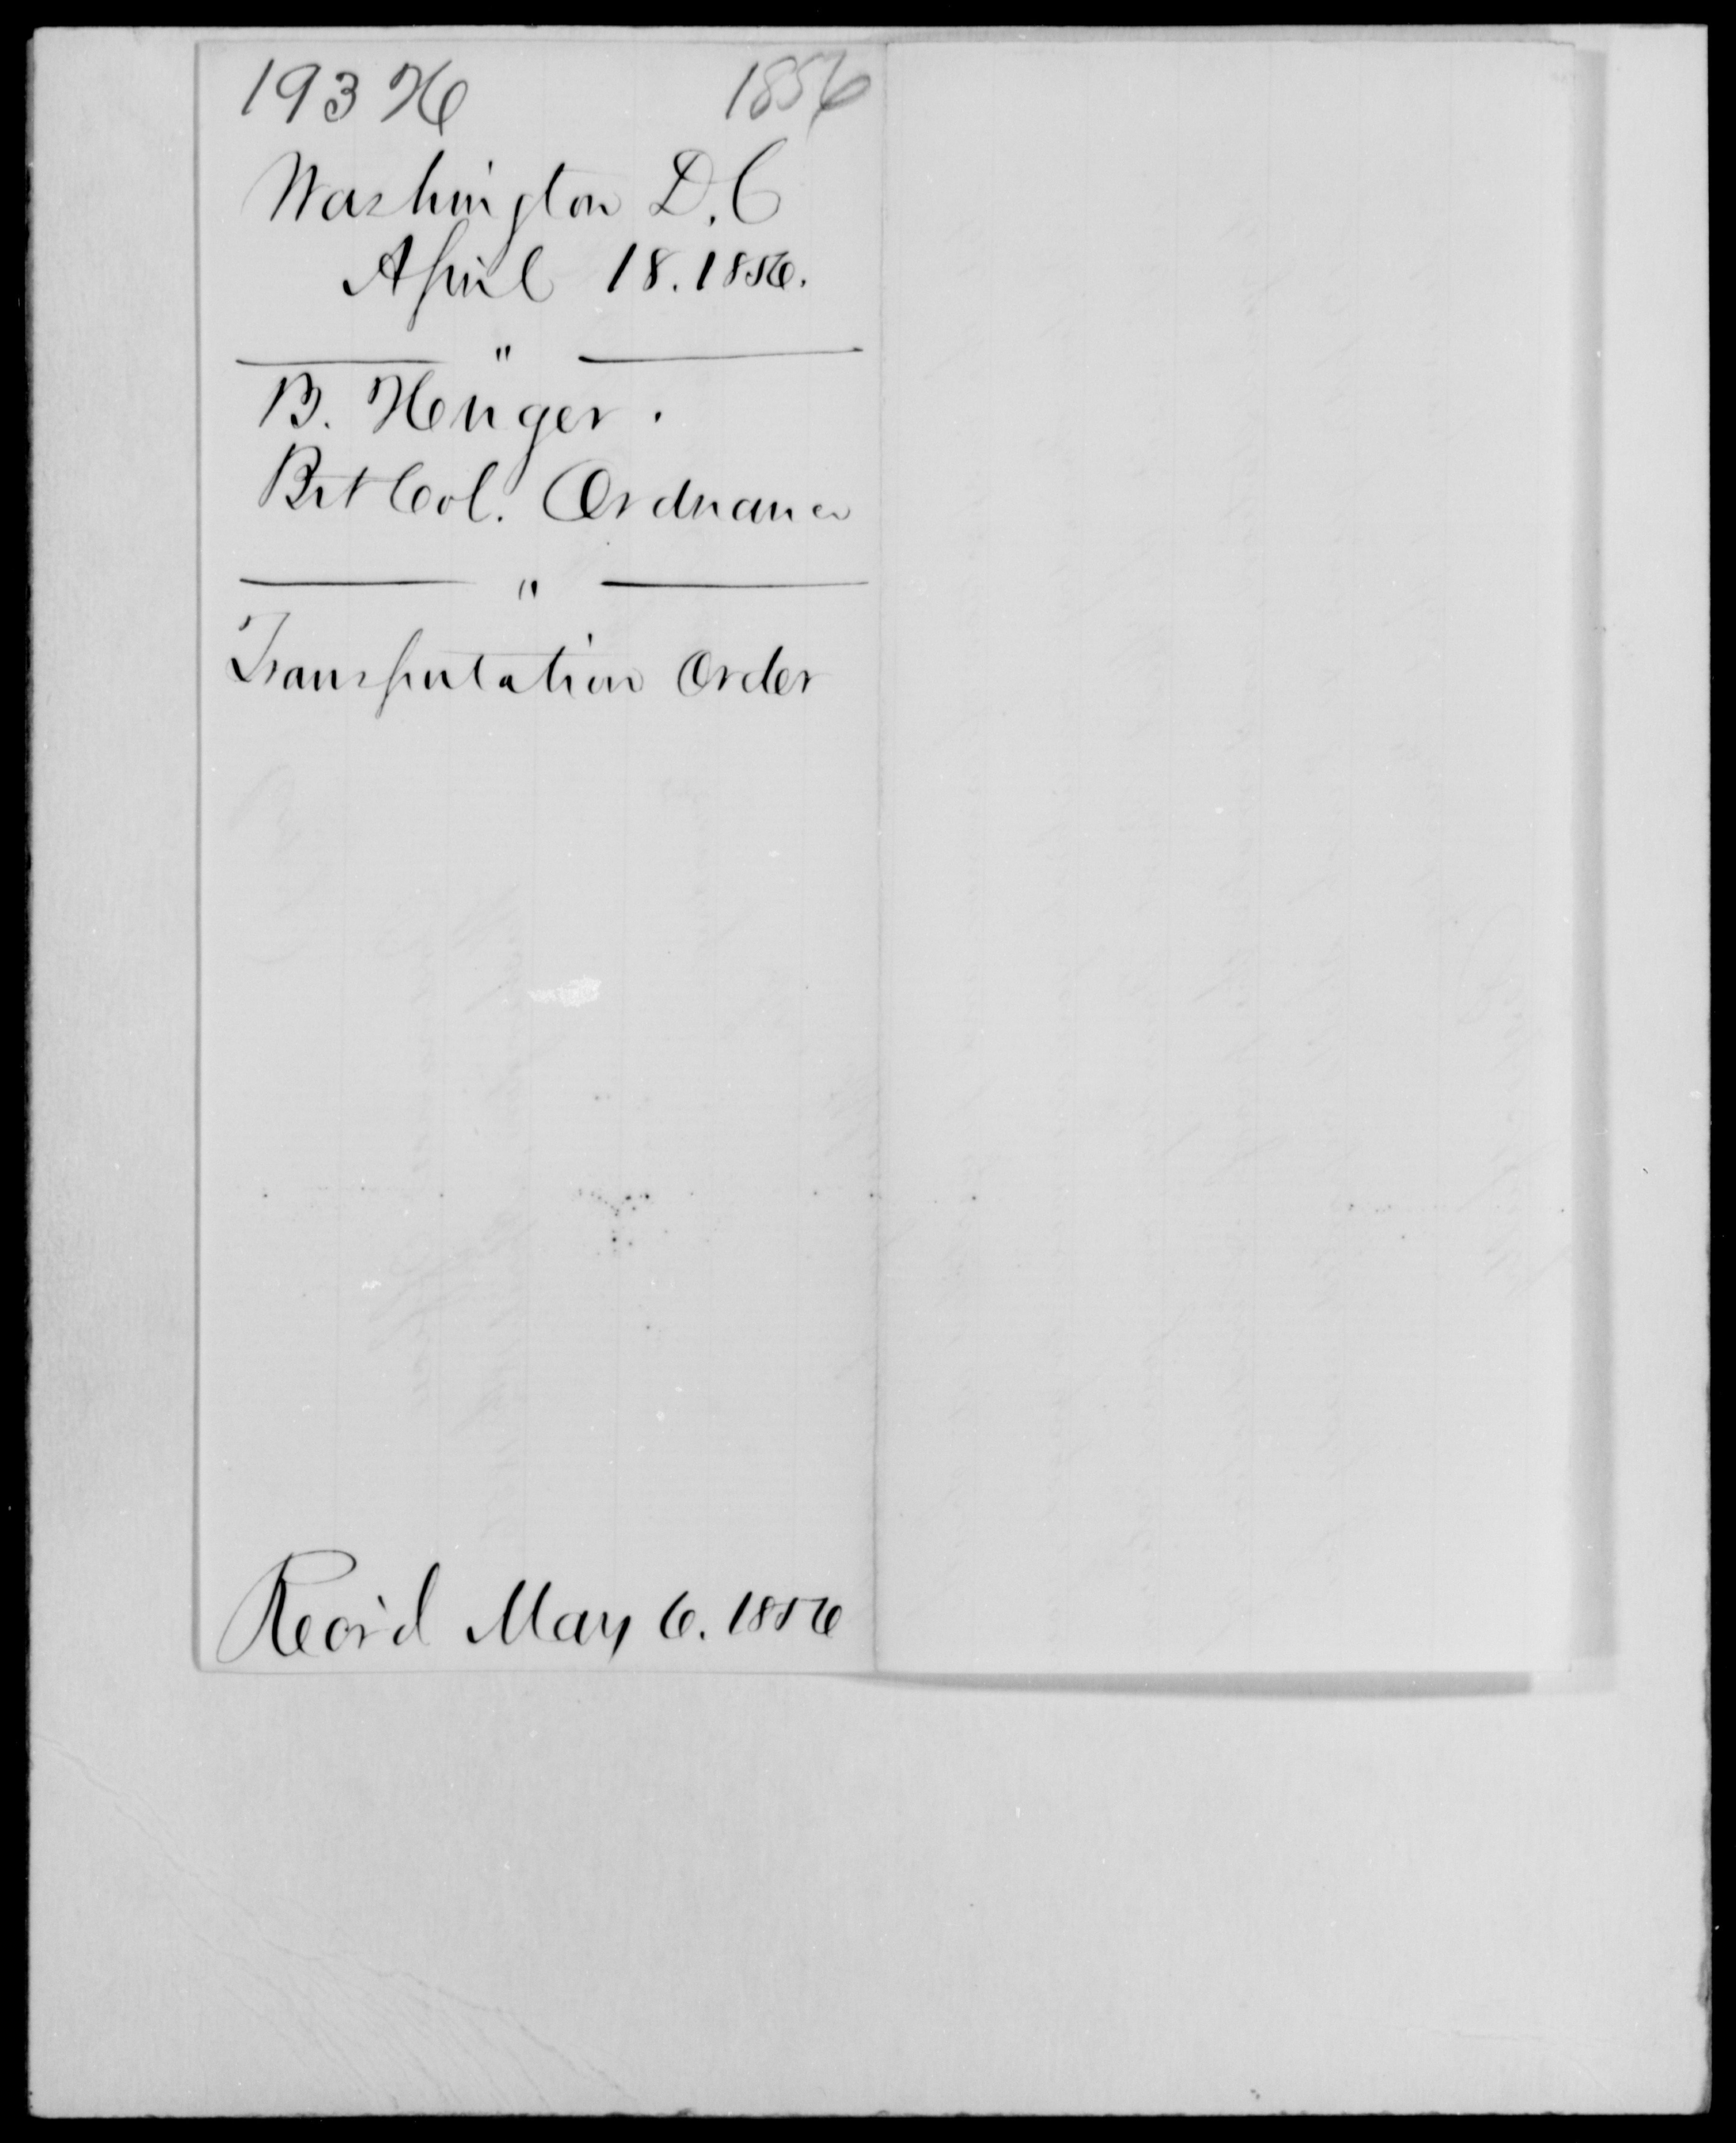 Henger, B - District of Columbia - 1856 - File No. H193